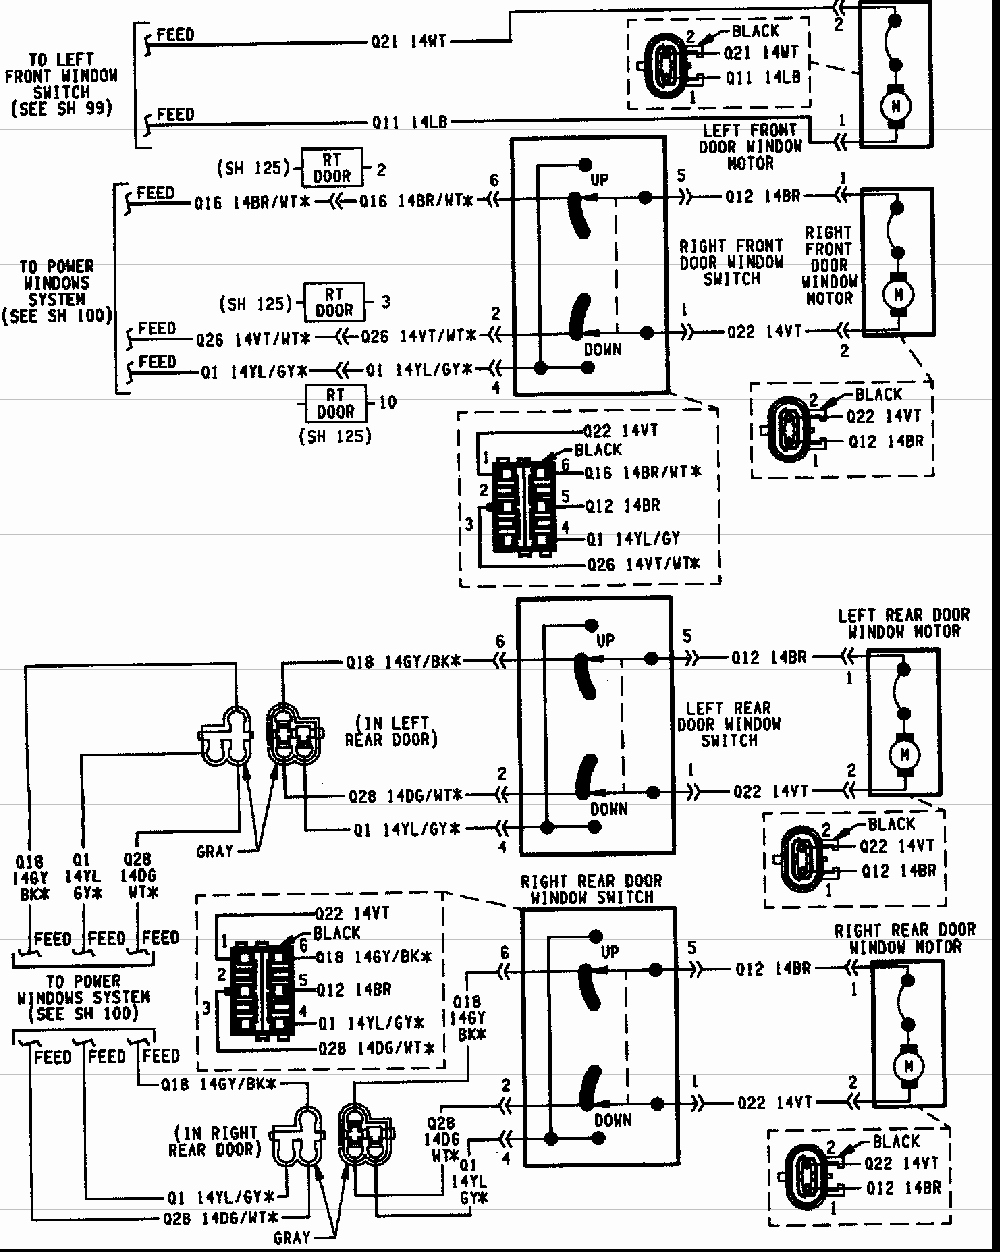 1996 jeep grand cherokee stereo wiring 1998 jeep grand cherokee stereo wiring diagram #13